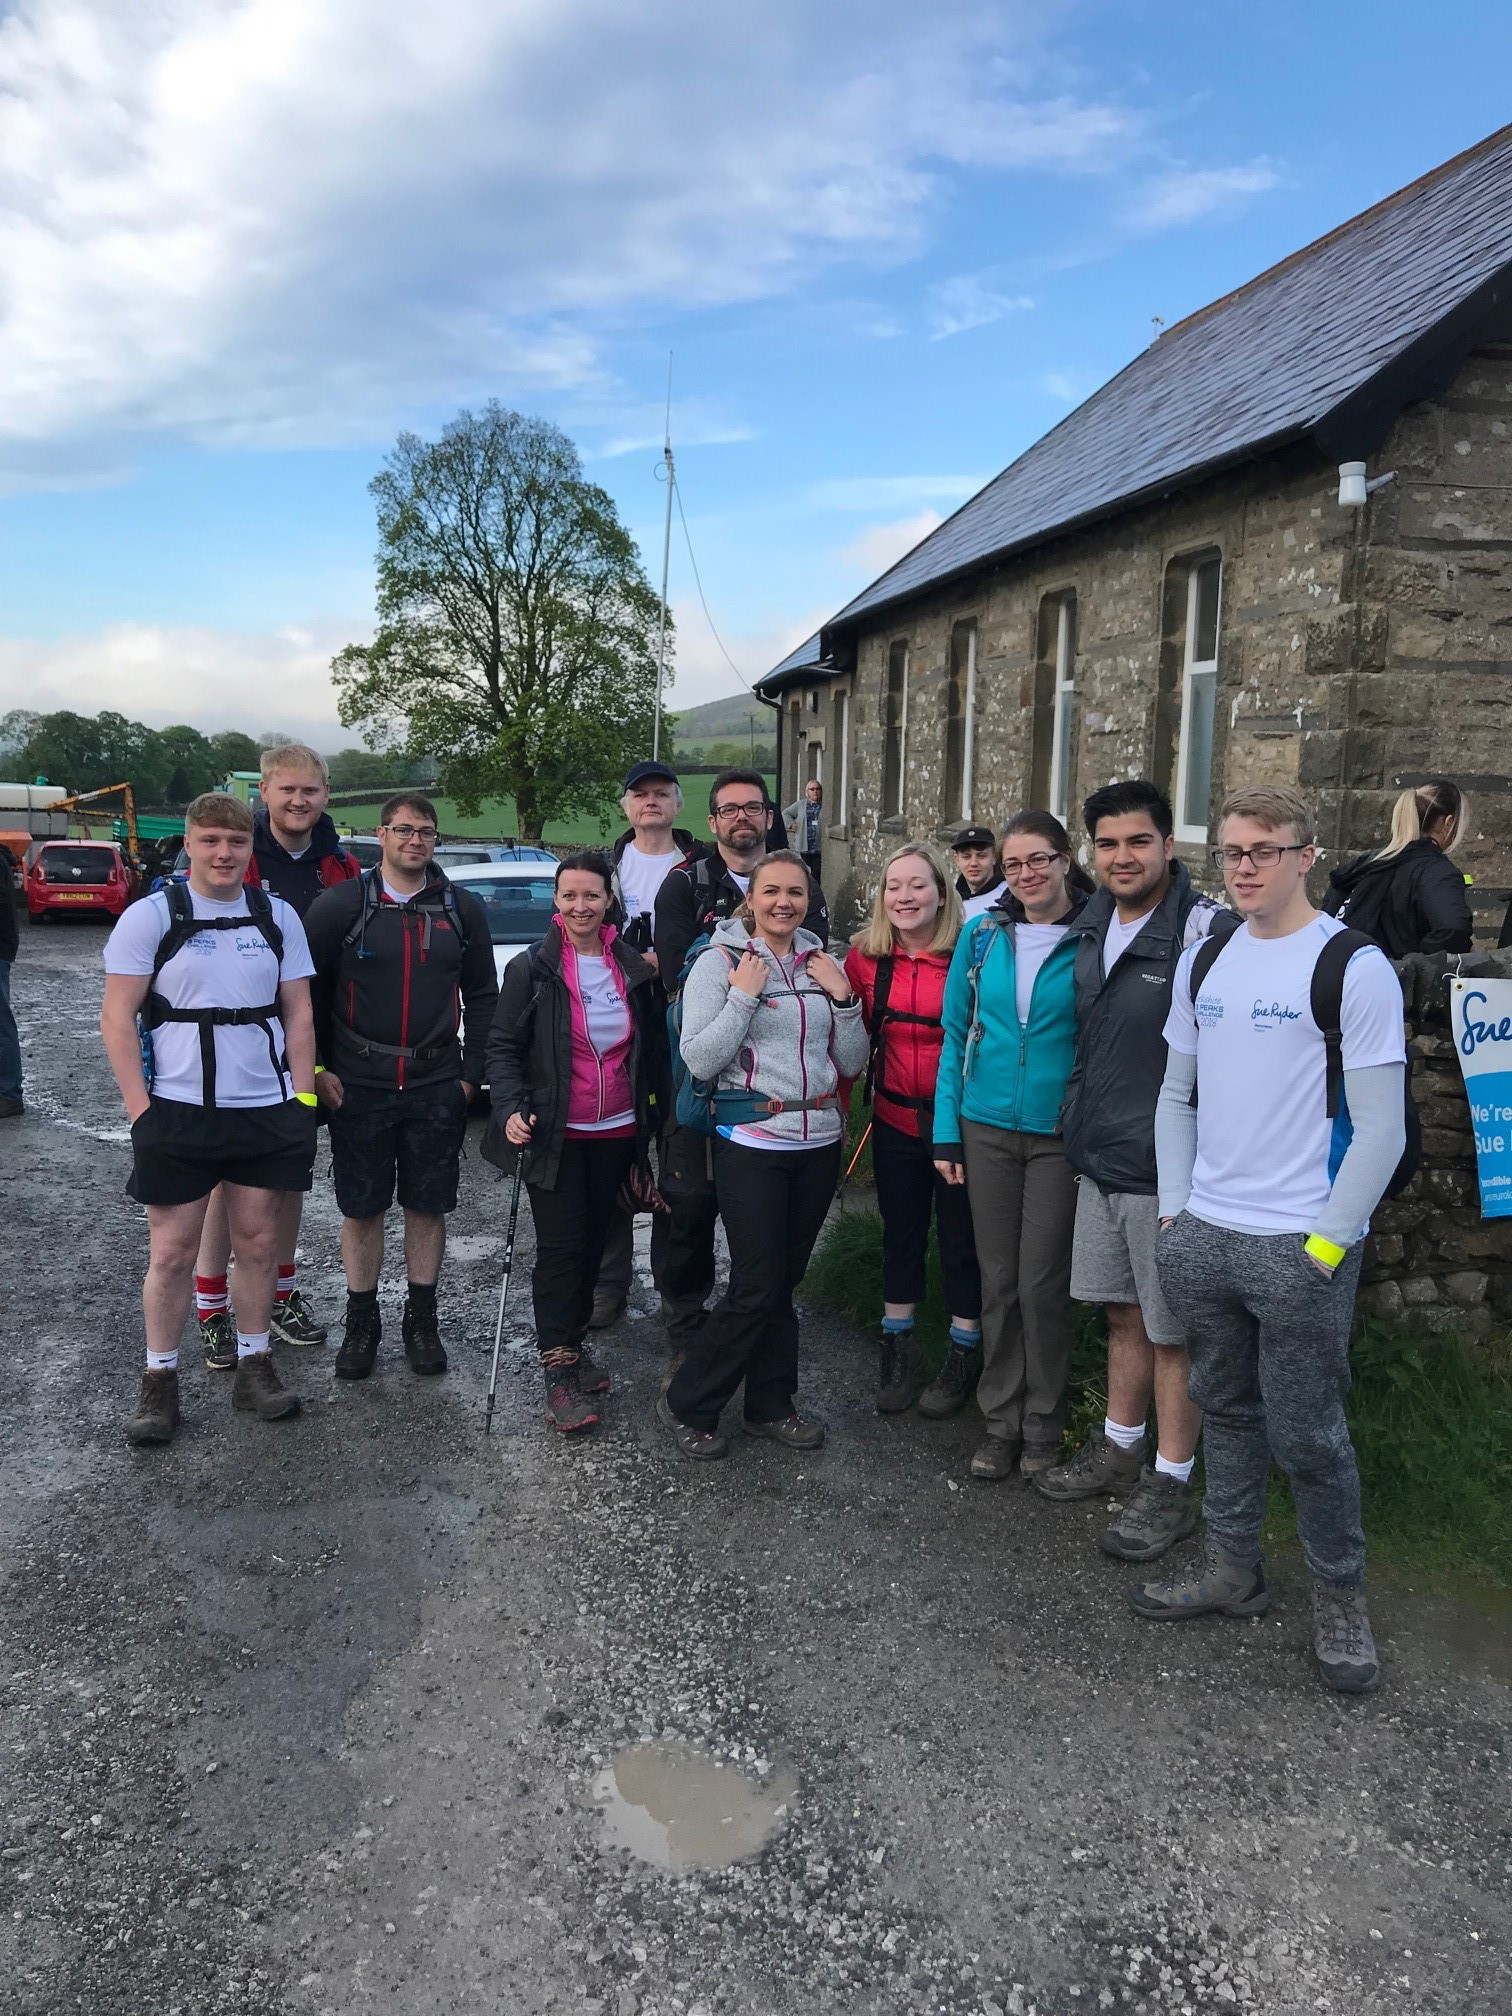 The Watson Buckle team sets off on its Yorkshire Three Peaks challenge